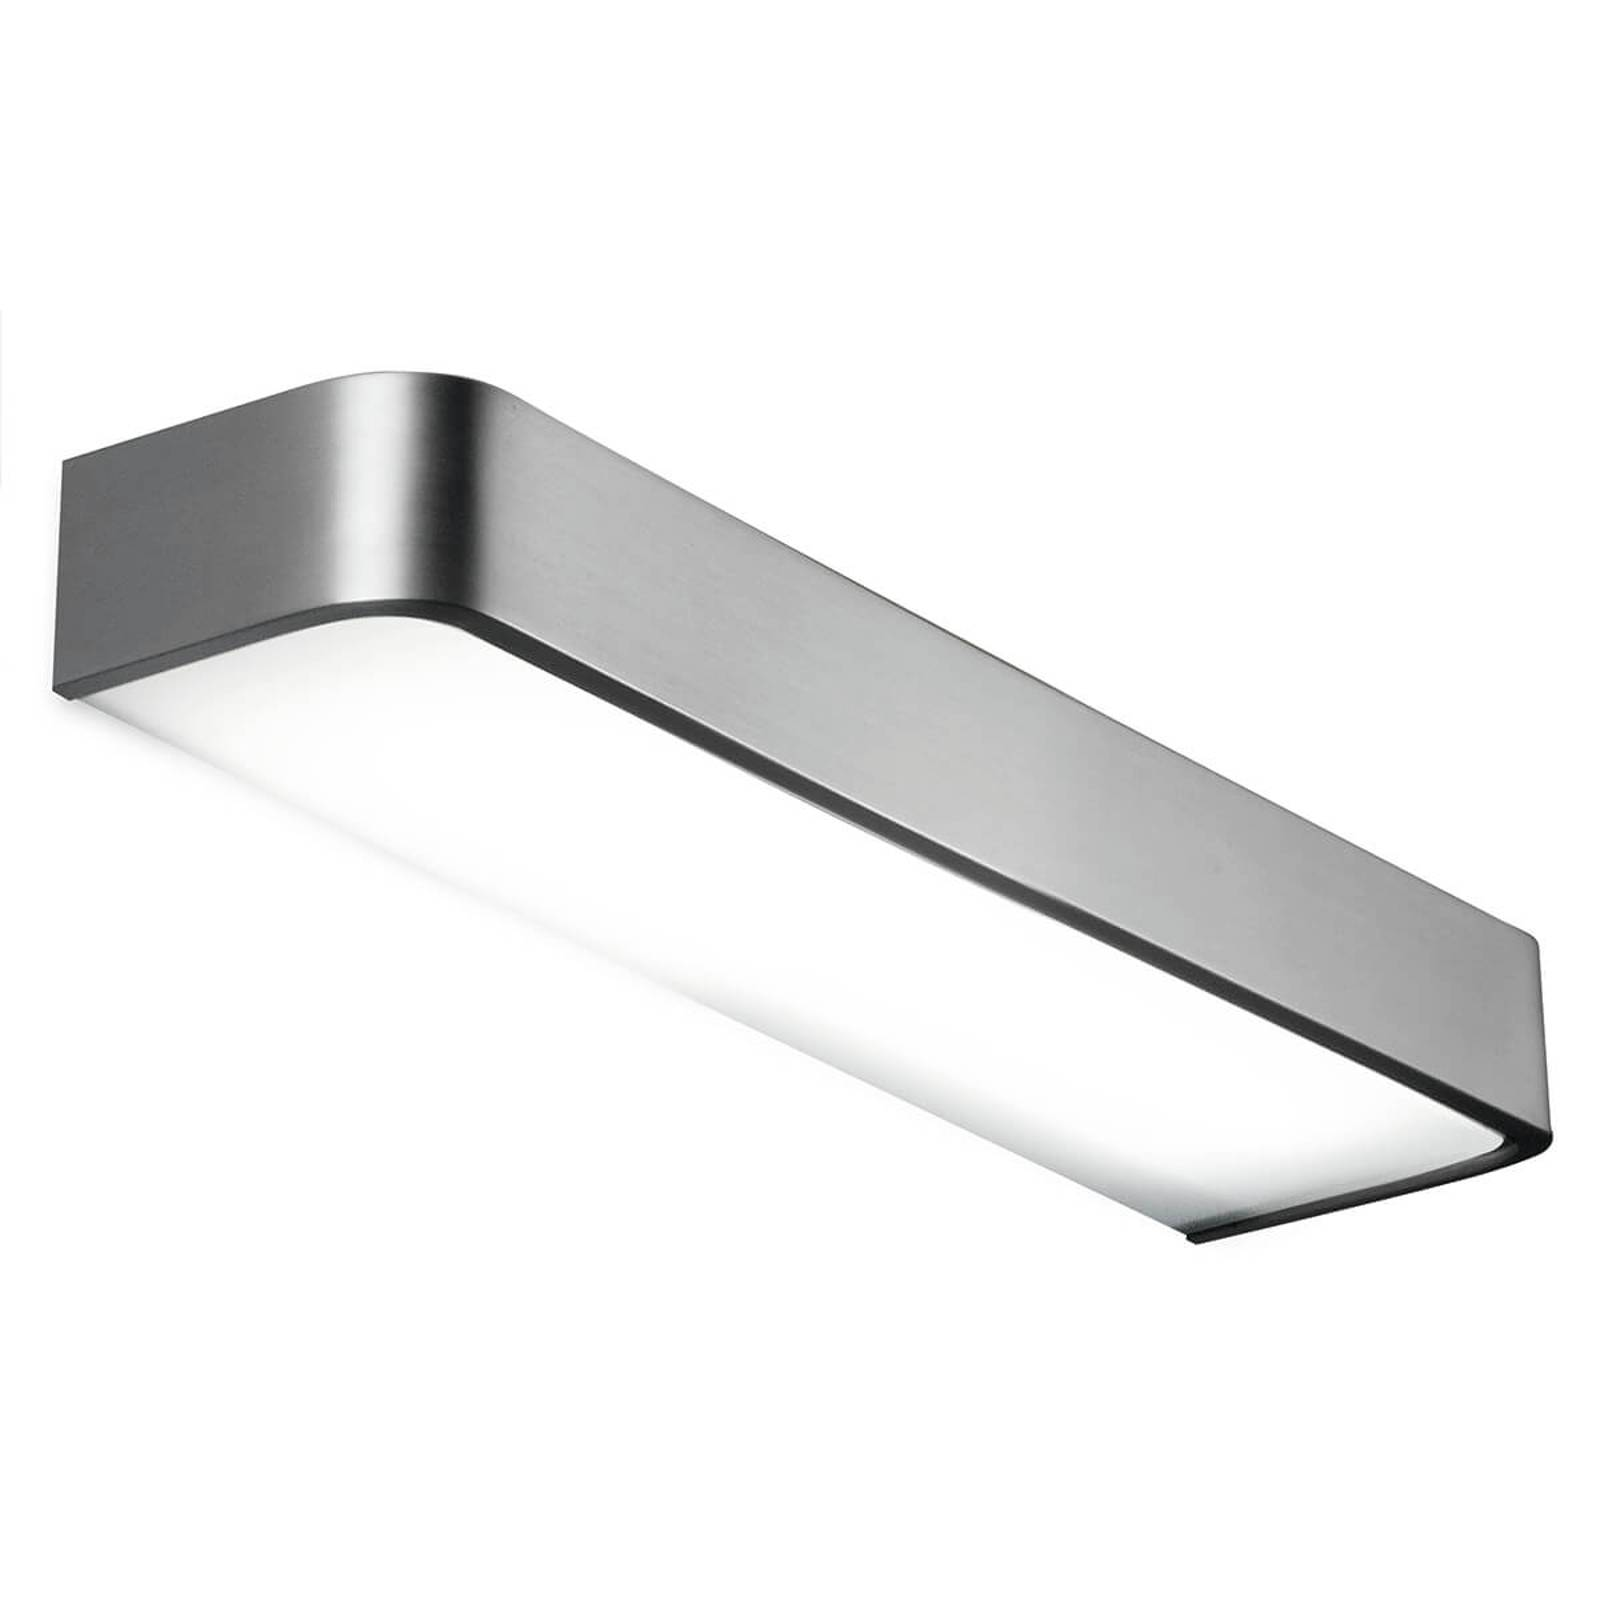 Bathroom wall light Arcos with LED, 60 cm nickel from Pujol